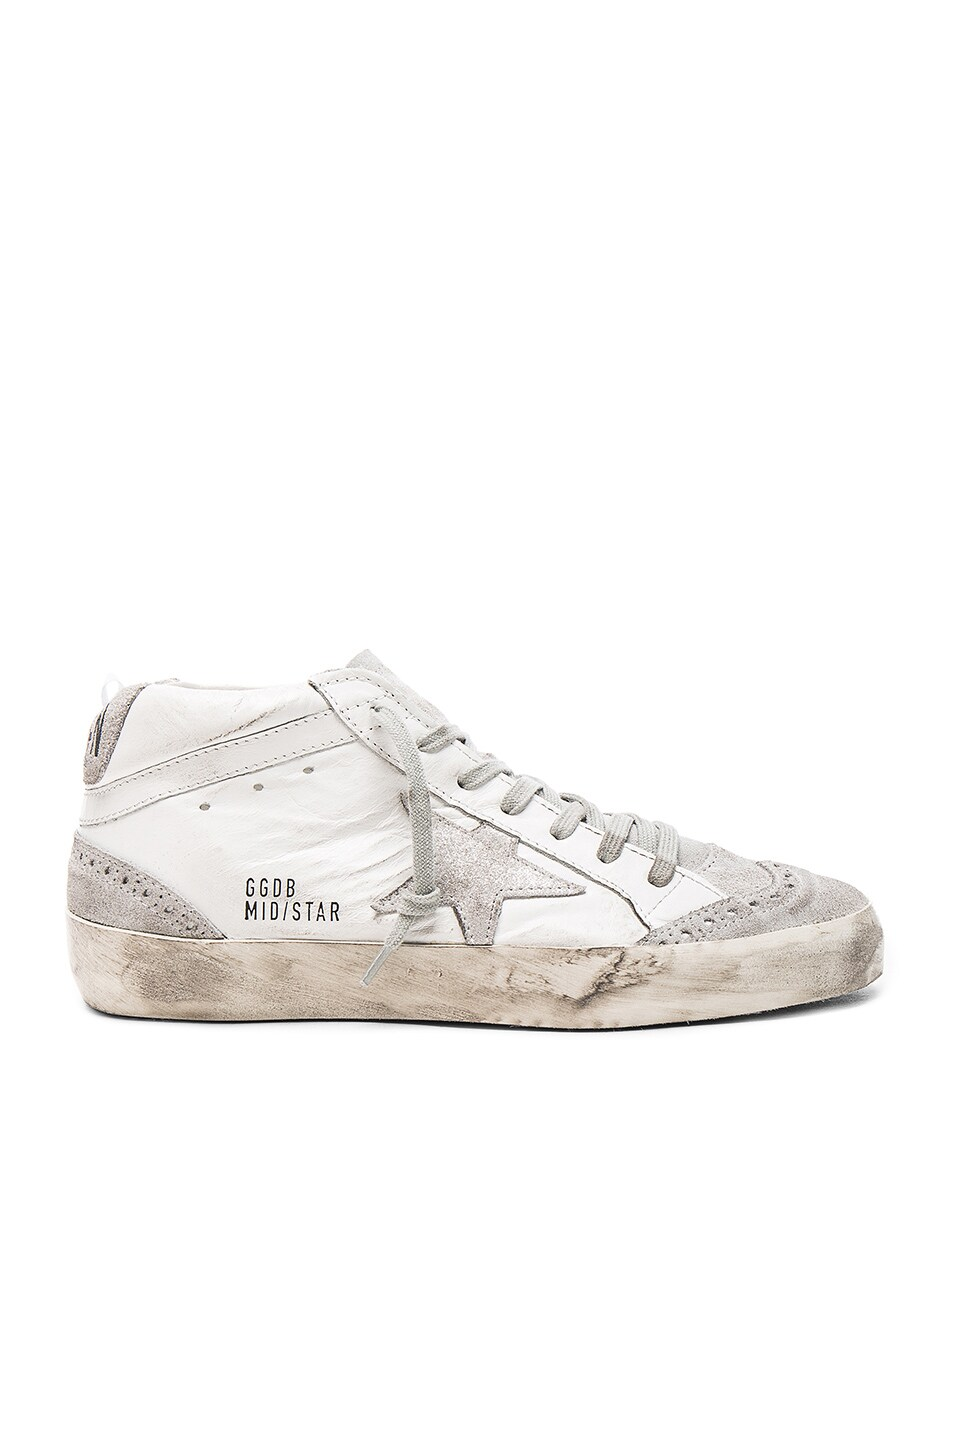 1a16494886432f Image 1 of Golden Goose Leather Mid Star Sneakers in Silver Glitter   White